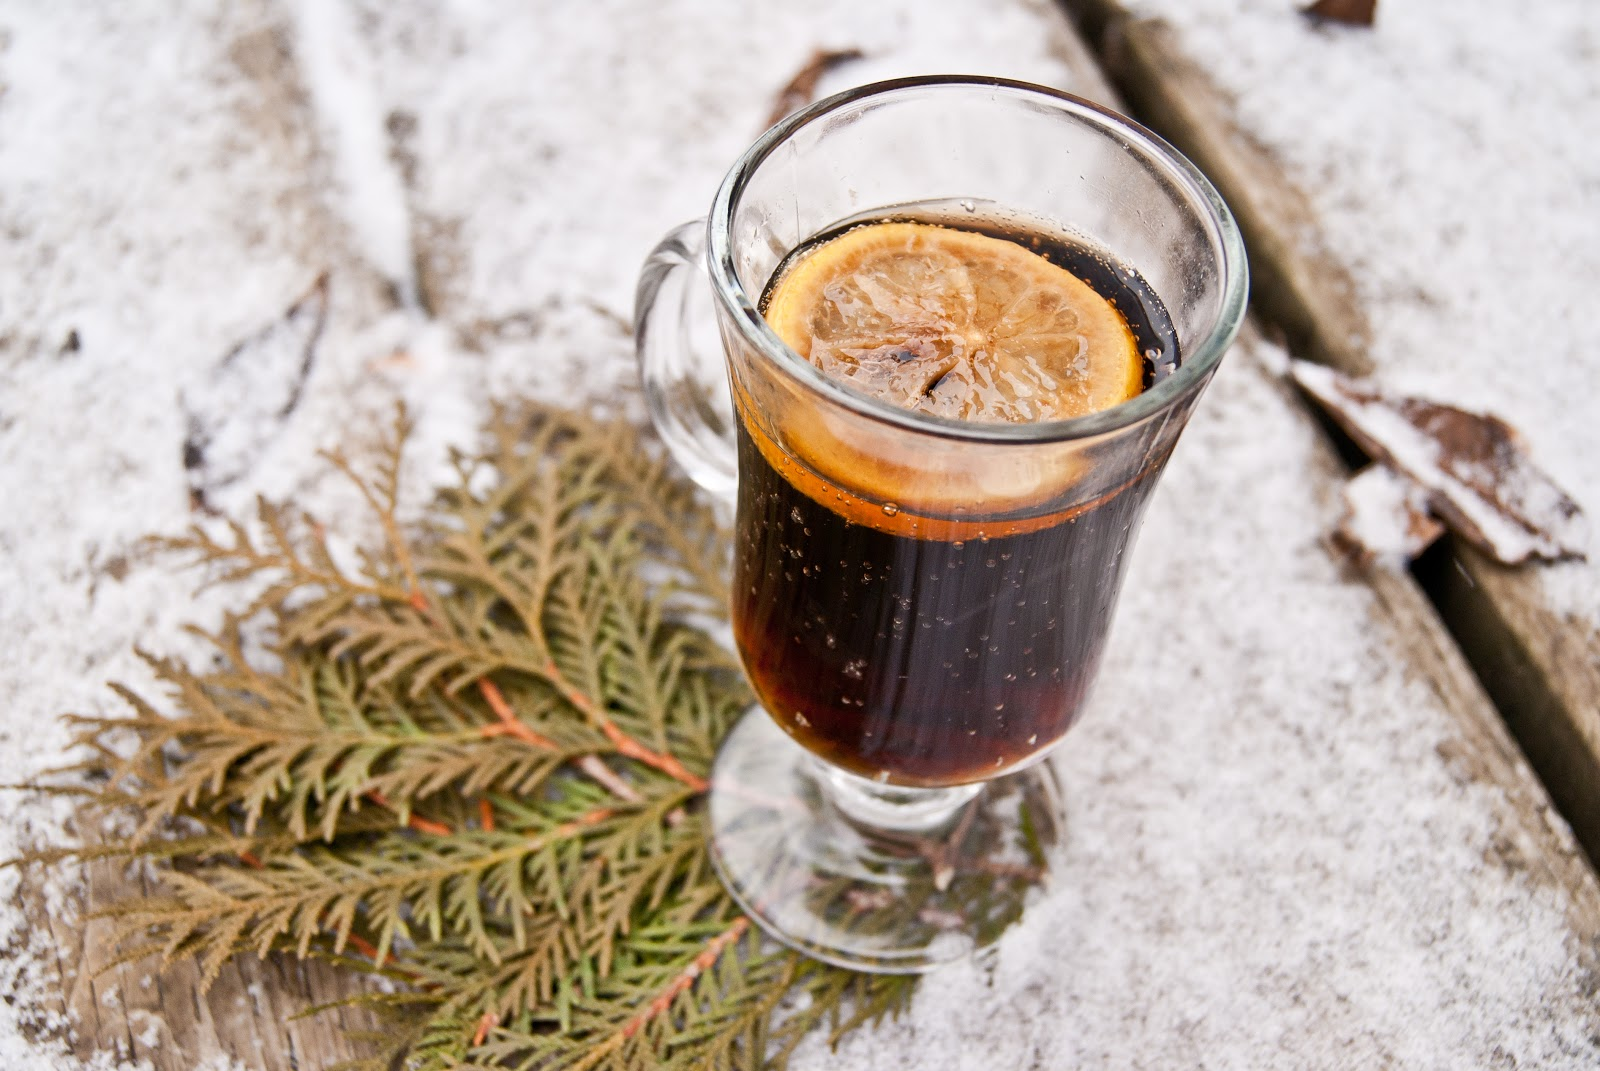 Crockpot Mulled Dr. Pepper | Warm and Fancy Crockpot Drinks You Can Serve This Winter